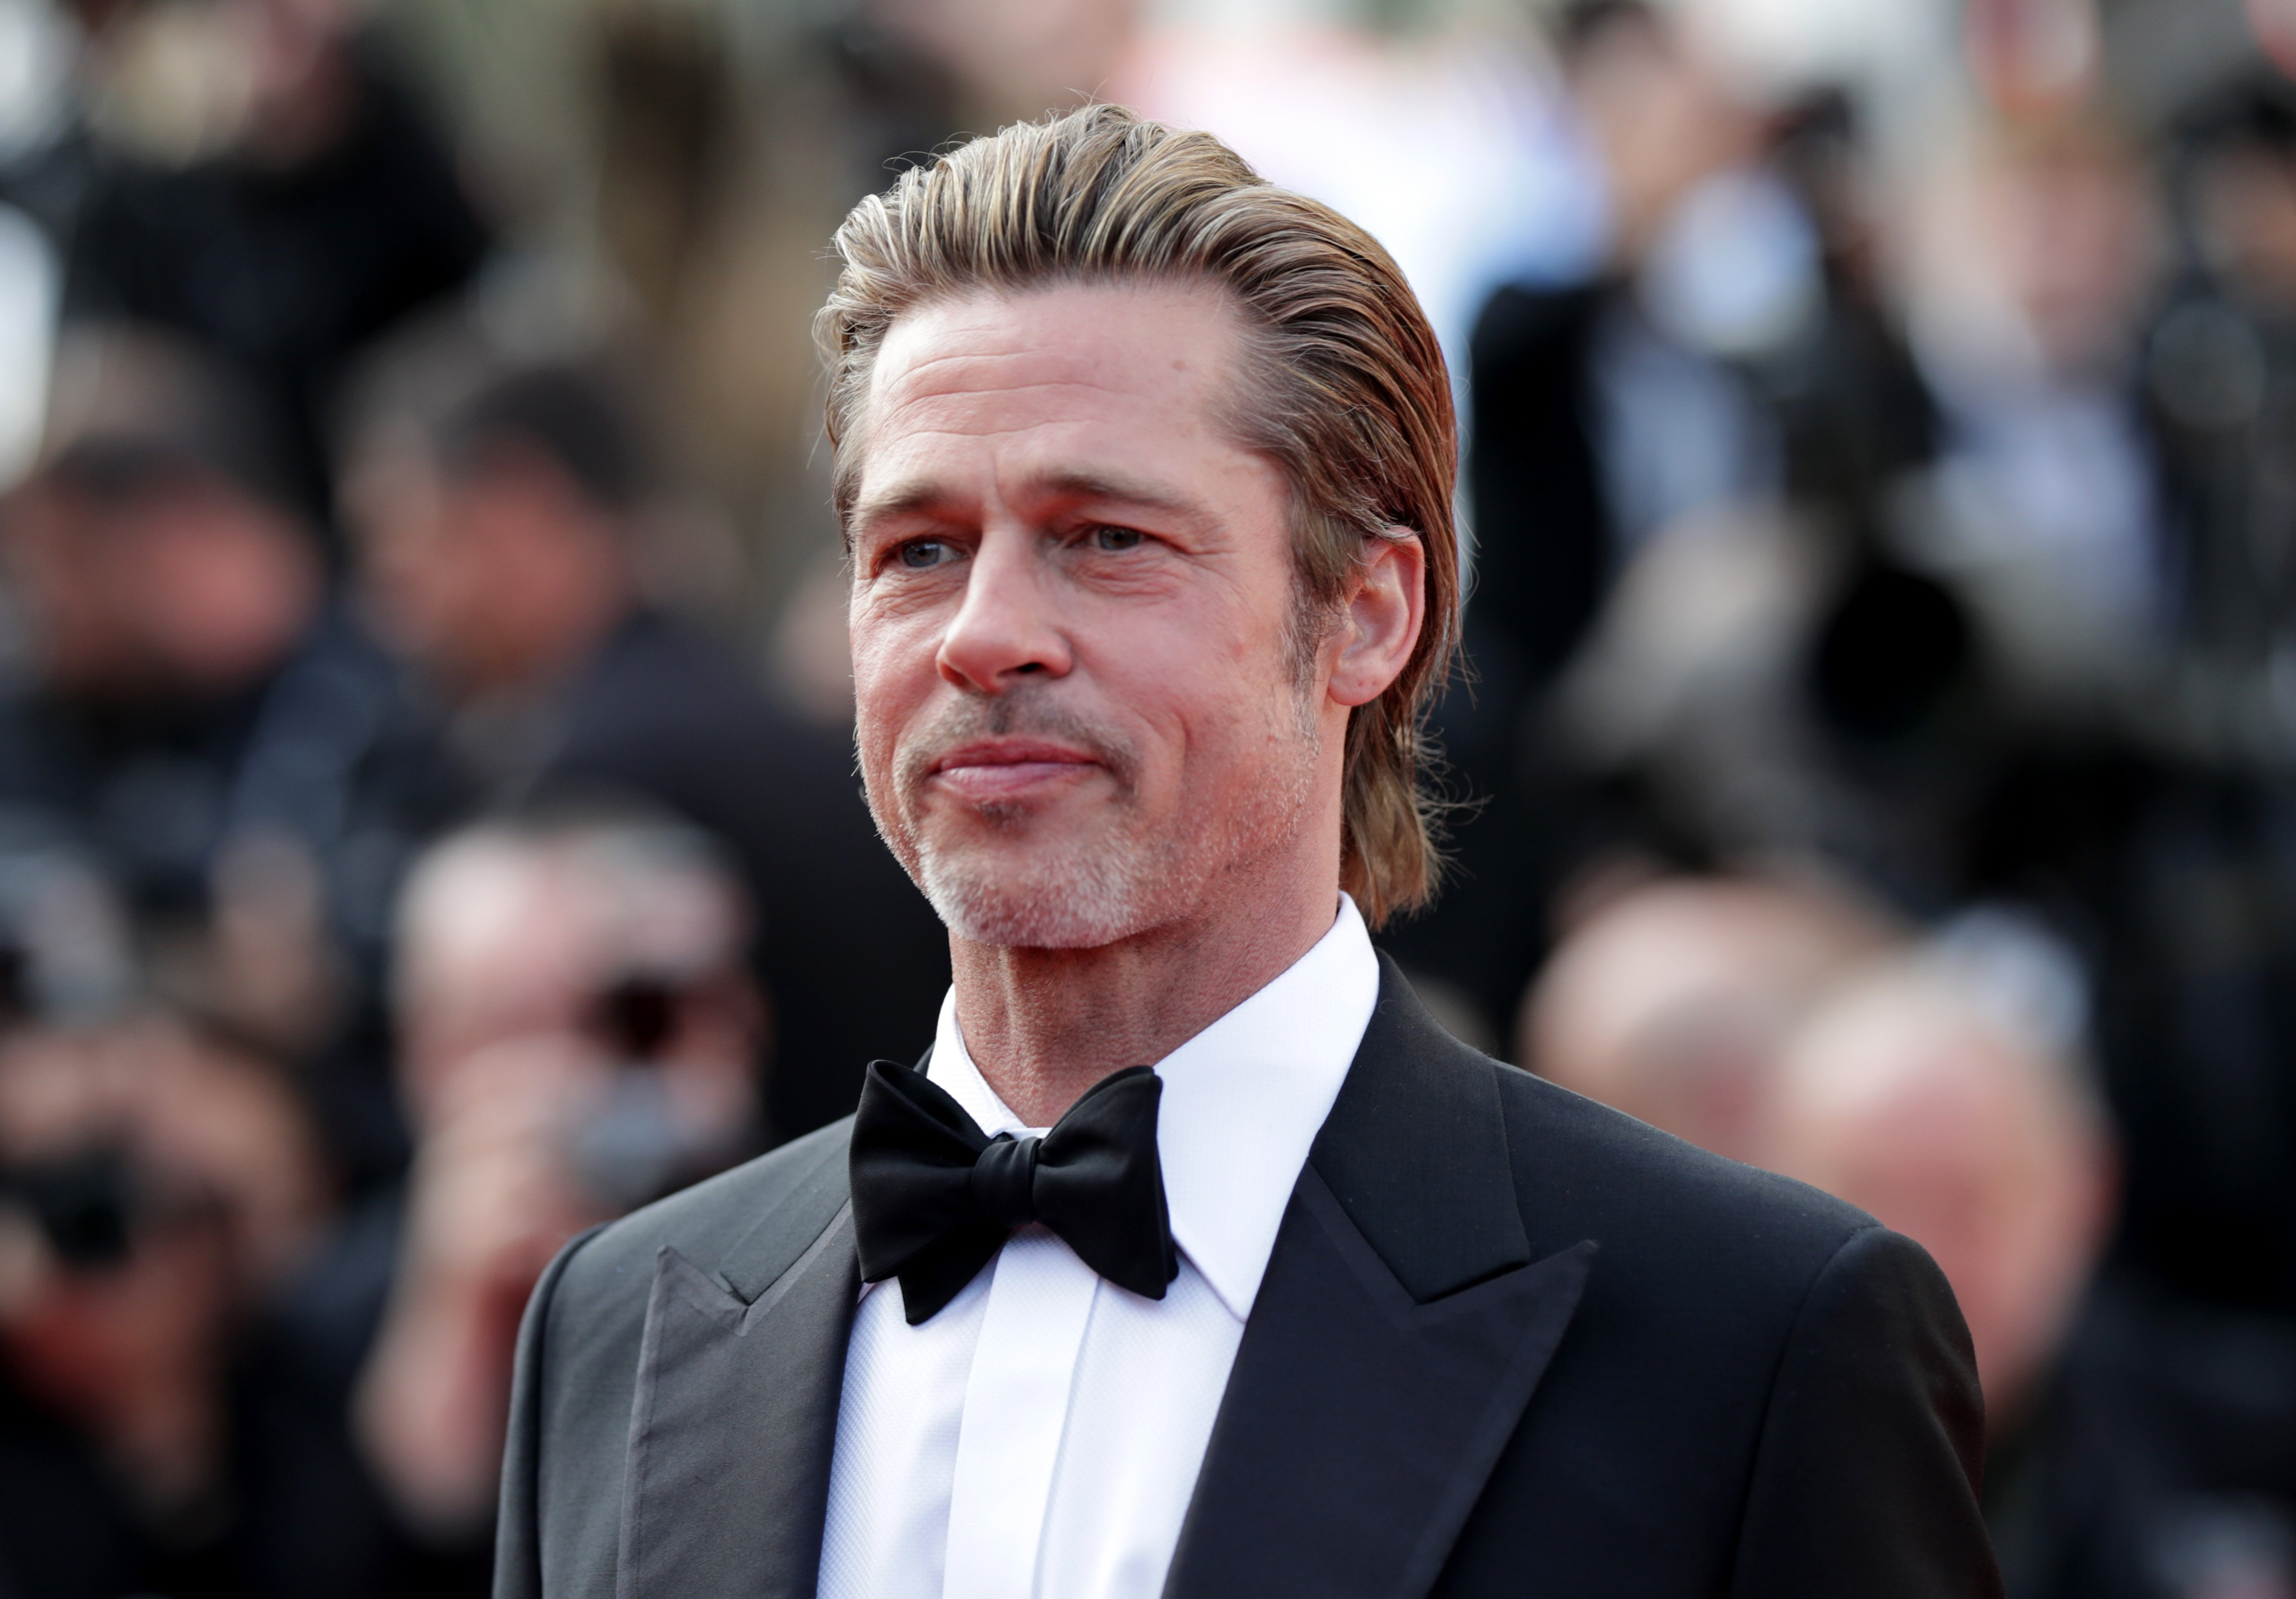 """Brad Pitt attends the screening of """"Once Upon A Time In Hollywood"""" during the 72nd annual Cannes Film Festival on May 21, 2019 